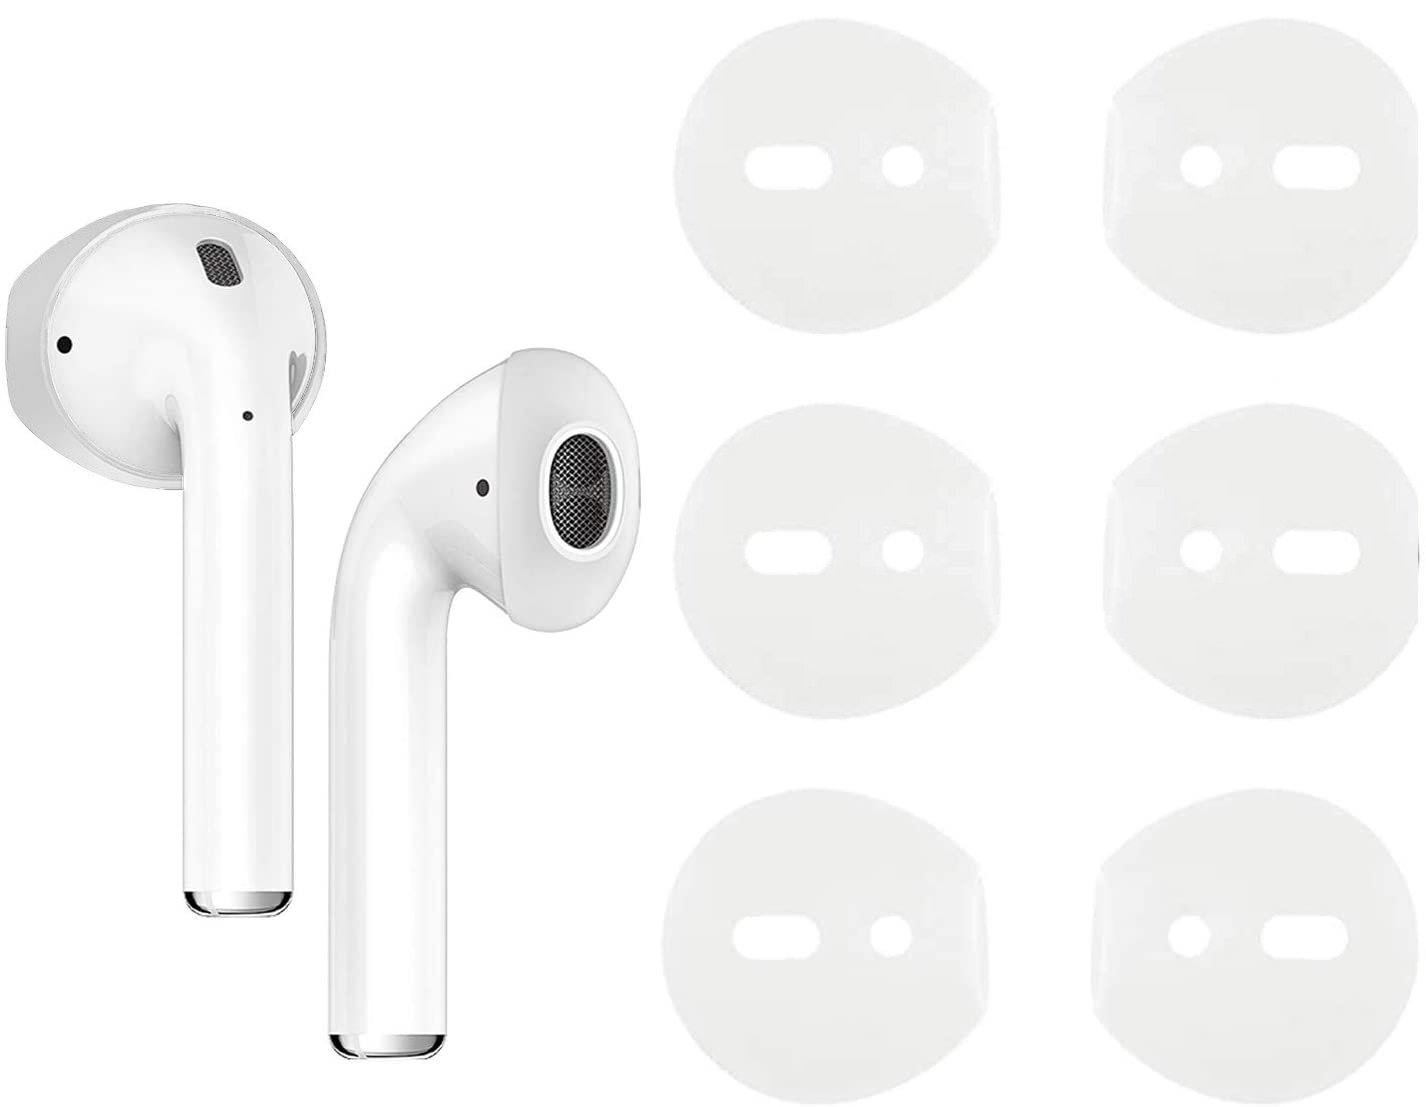 Ear Caps for AirPods 1 & 2 (3 Pairs) Anti-Slip - Amialeurope.com: get the best electronics at the lowest price